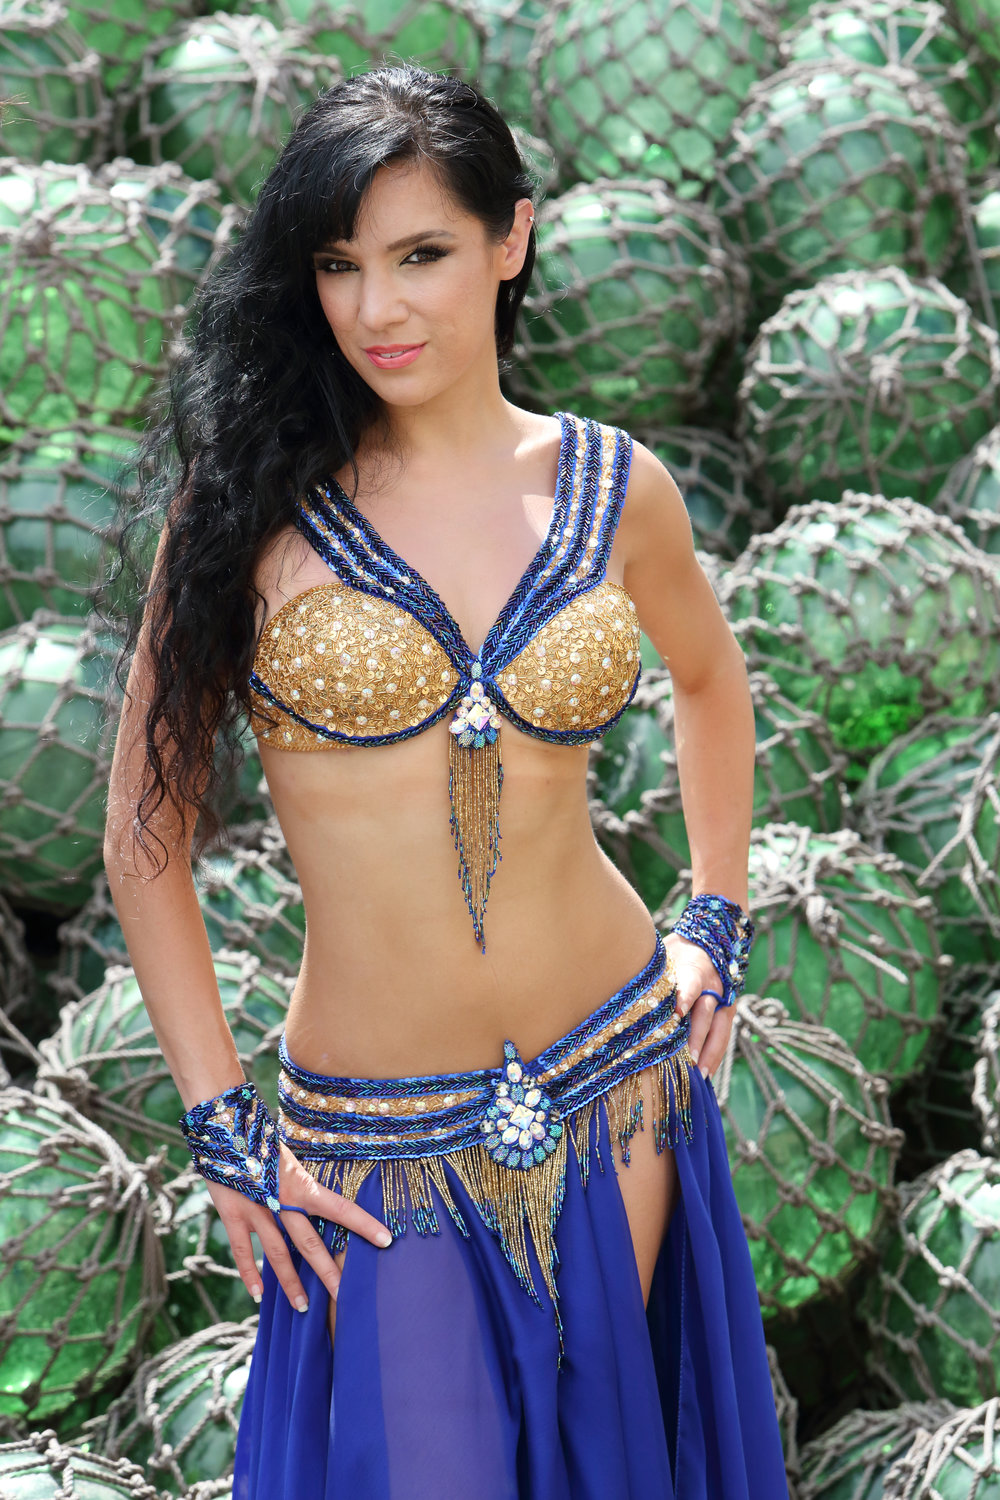 Sapphire Blue Gold Bella Belly Dance Costume